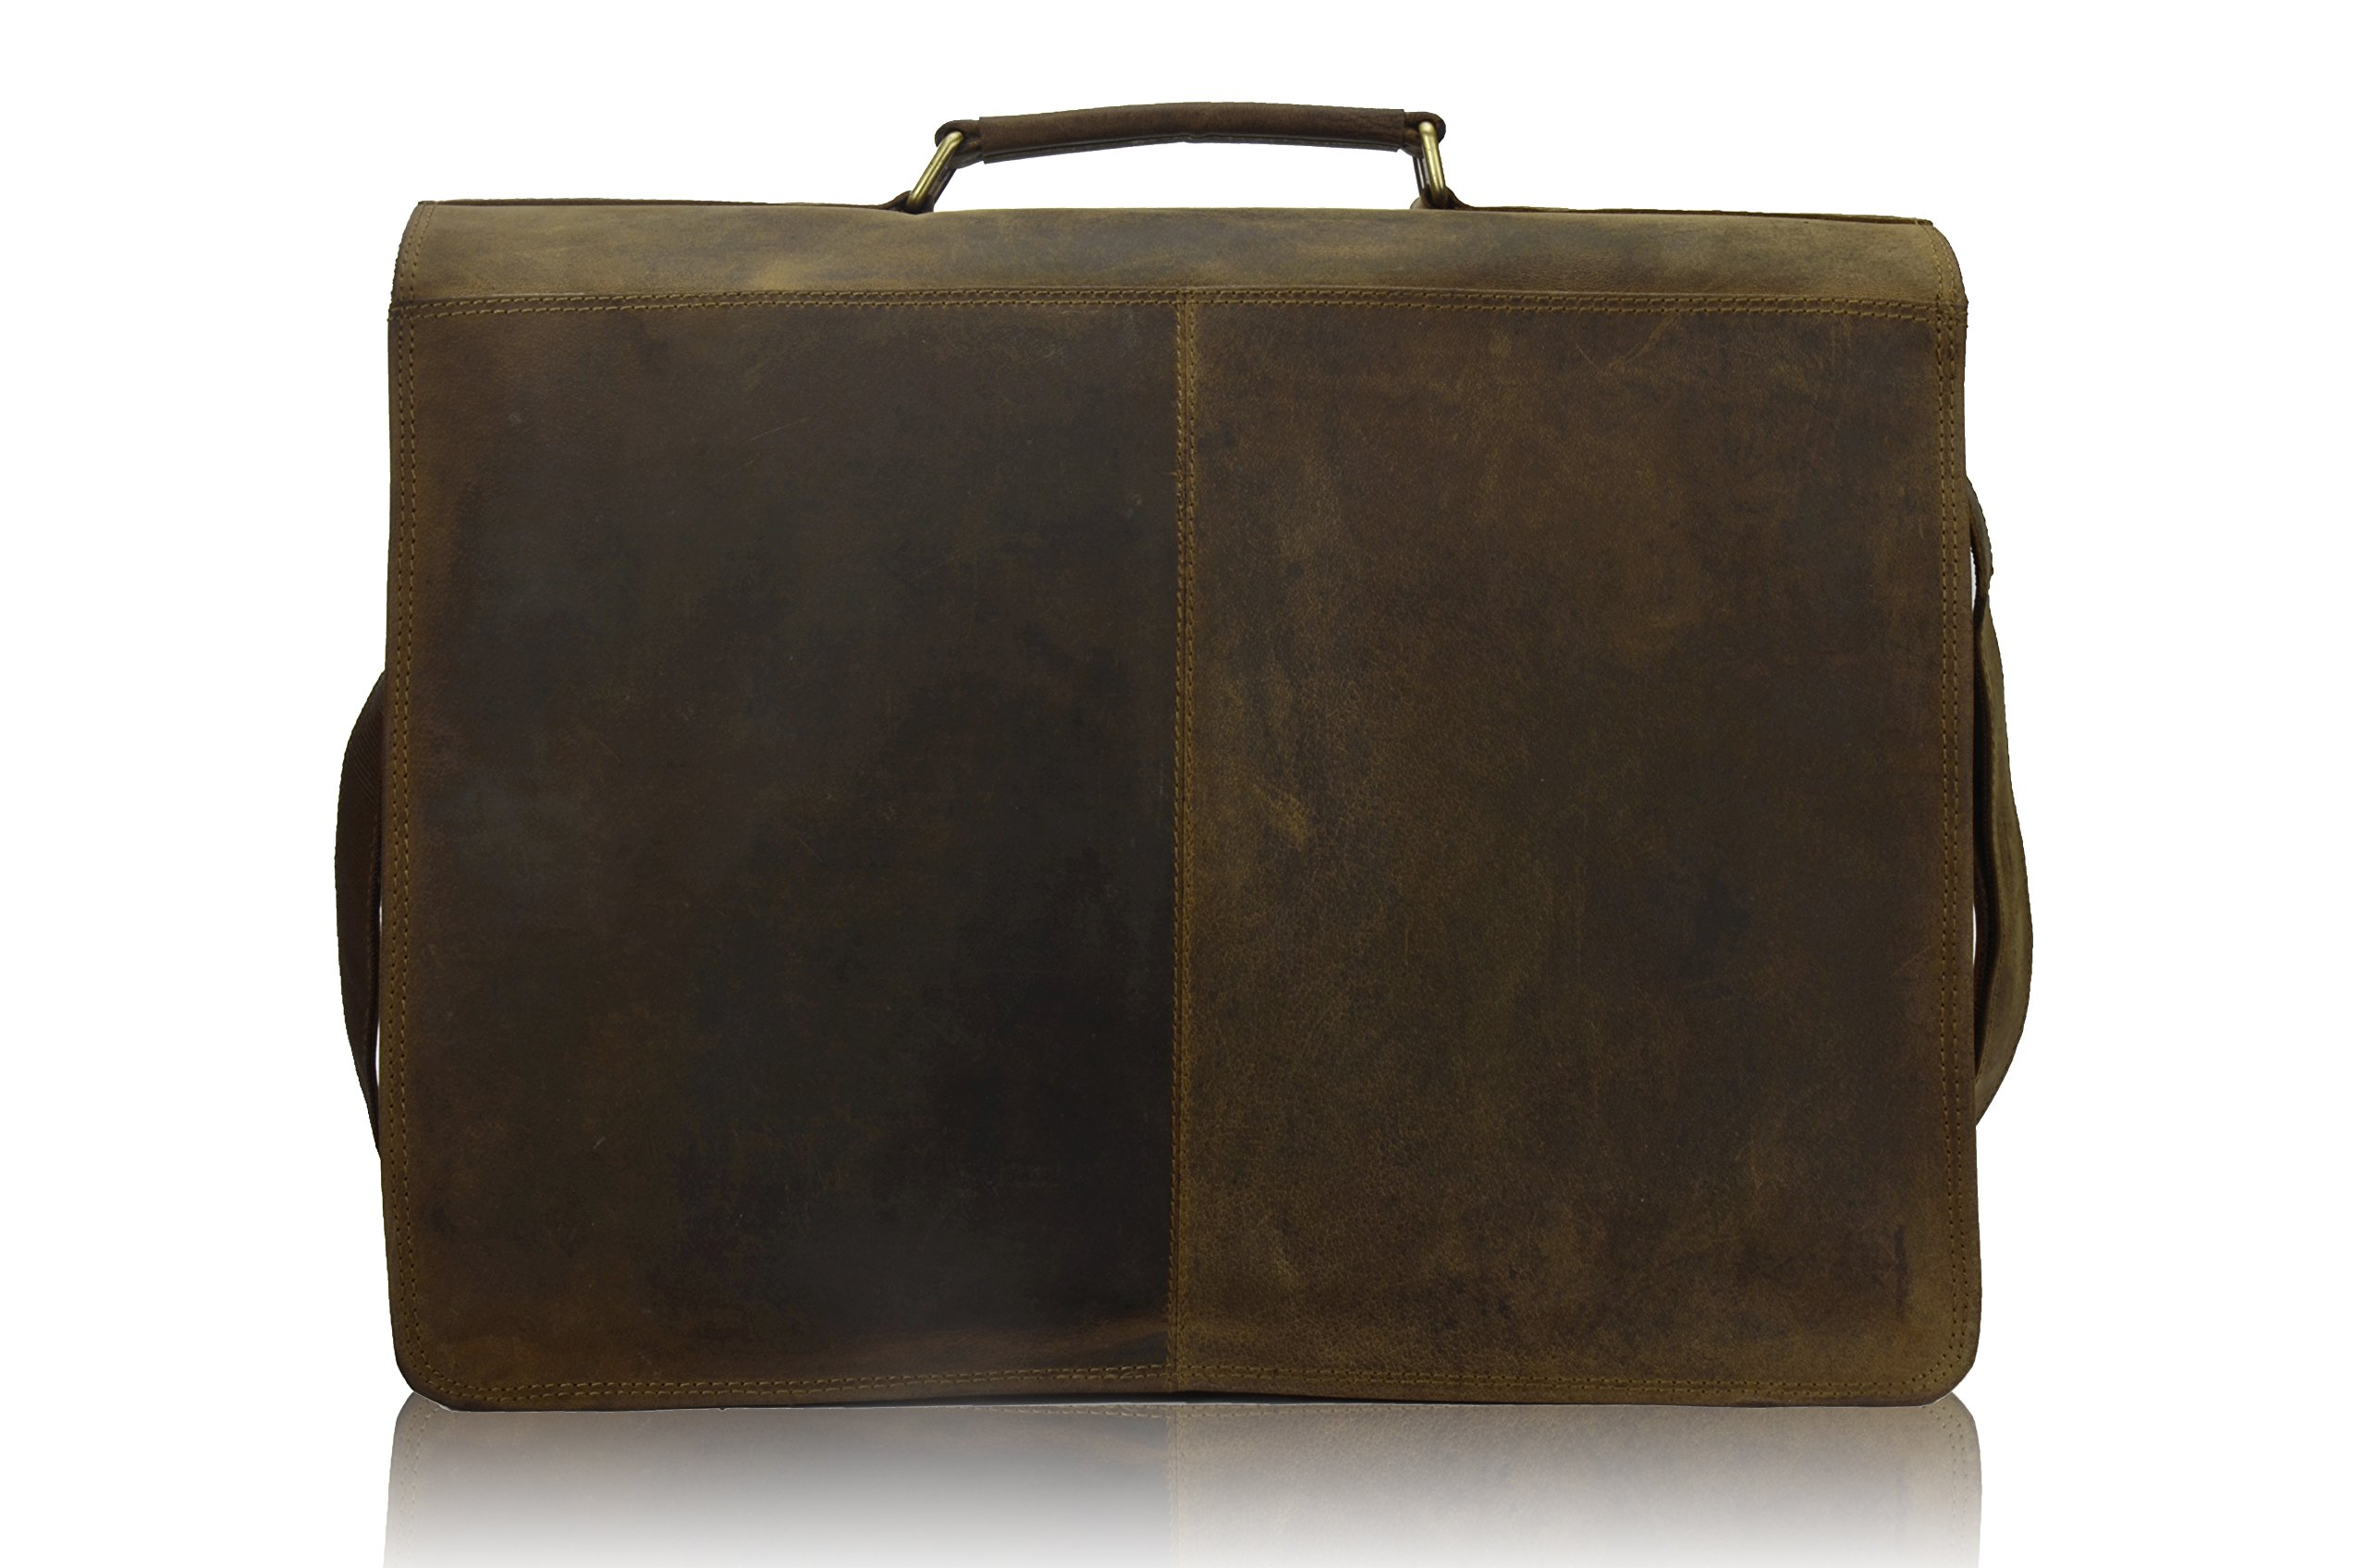 TONY'S BAGS - 18 inch Laptop bag - College Bag, Office Bag Laptop Bag Briefcase in Vintage Leather by Tony bags (Image #2)